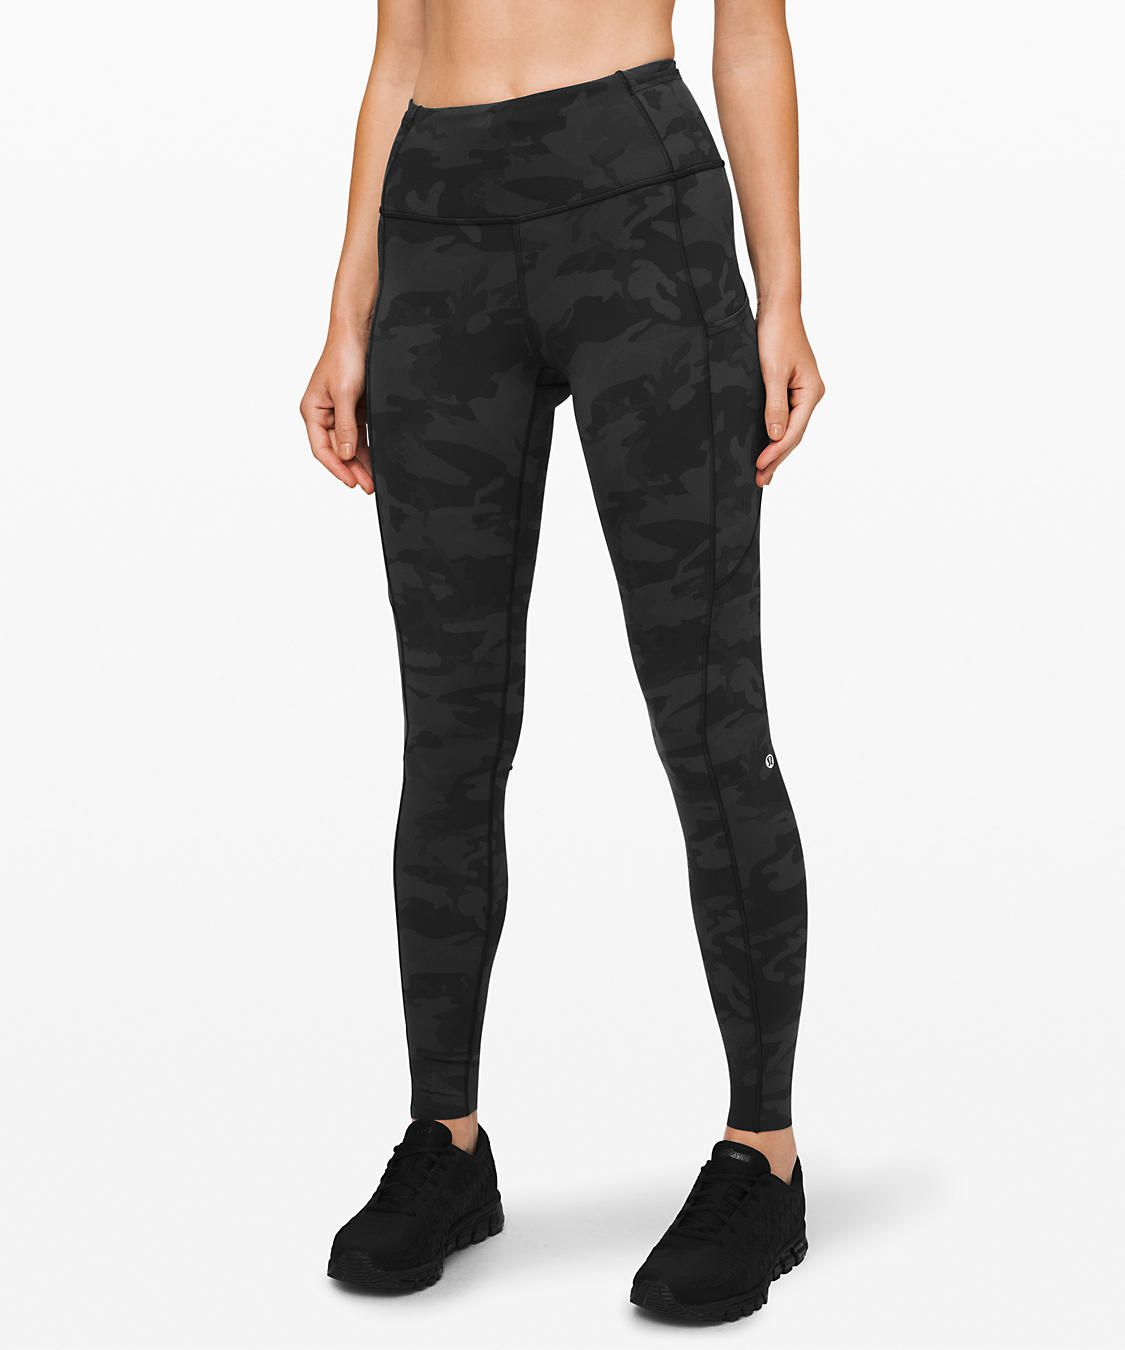 Fast and free tight 28 nonreflective womens pants